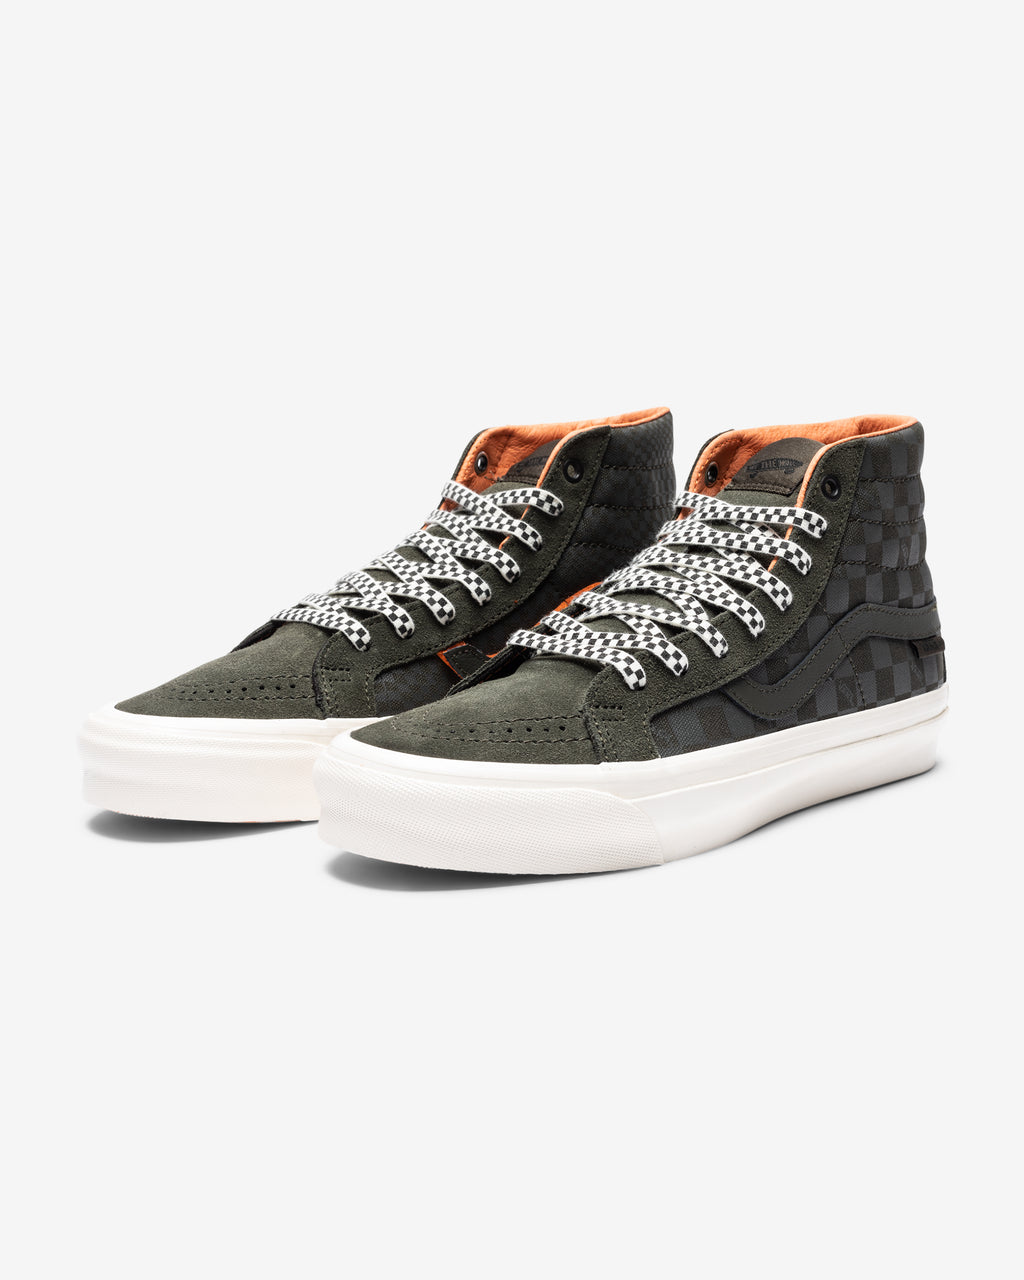 VANS X PORTER OG SK8-HI LX - FORESTNIGHT/ BLACKINK